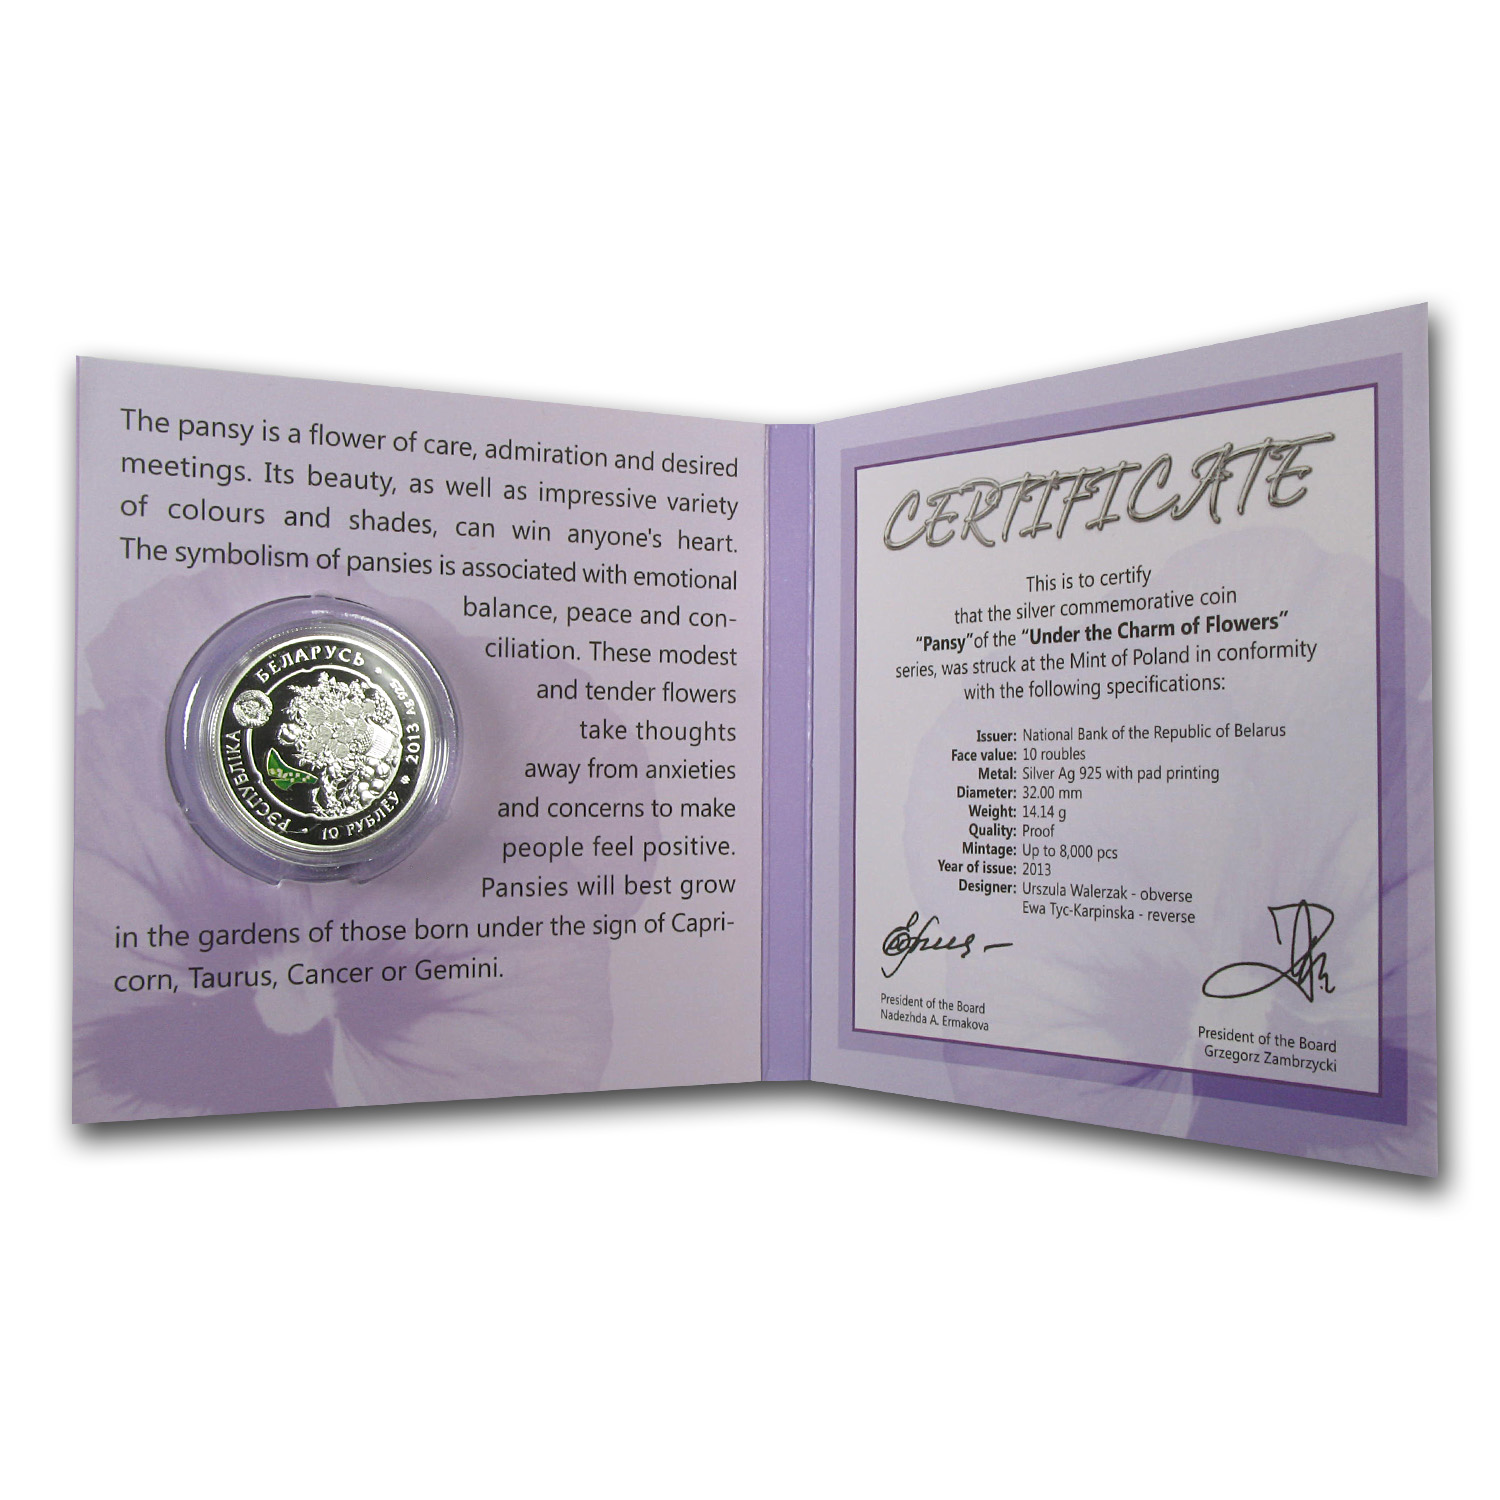 2013 Belarus Silver Proof Under the Charm of Flowers Pansy